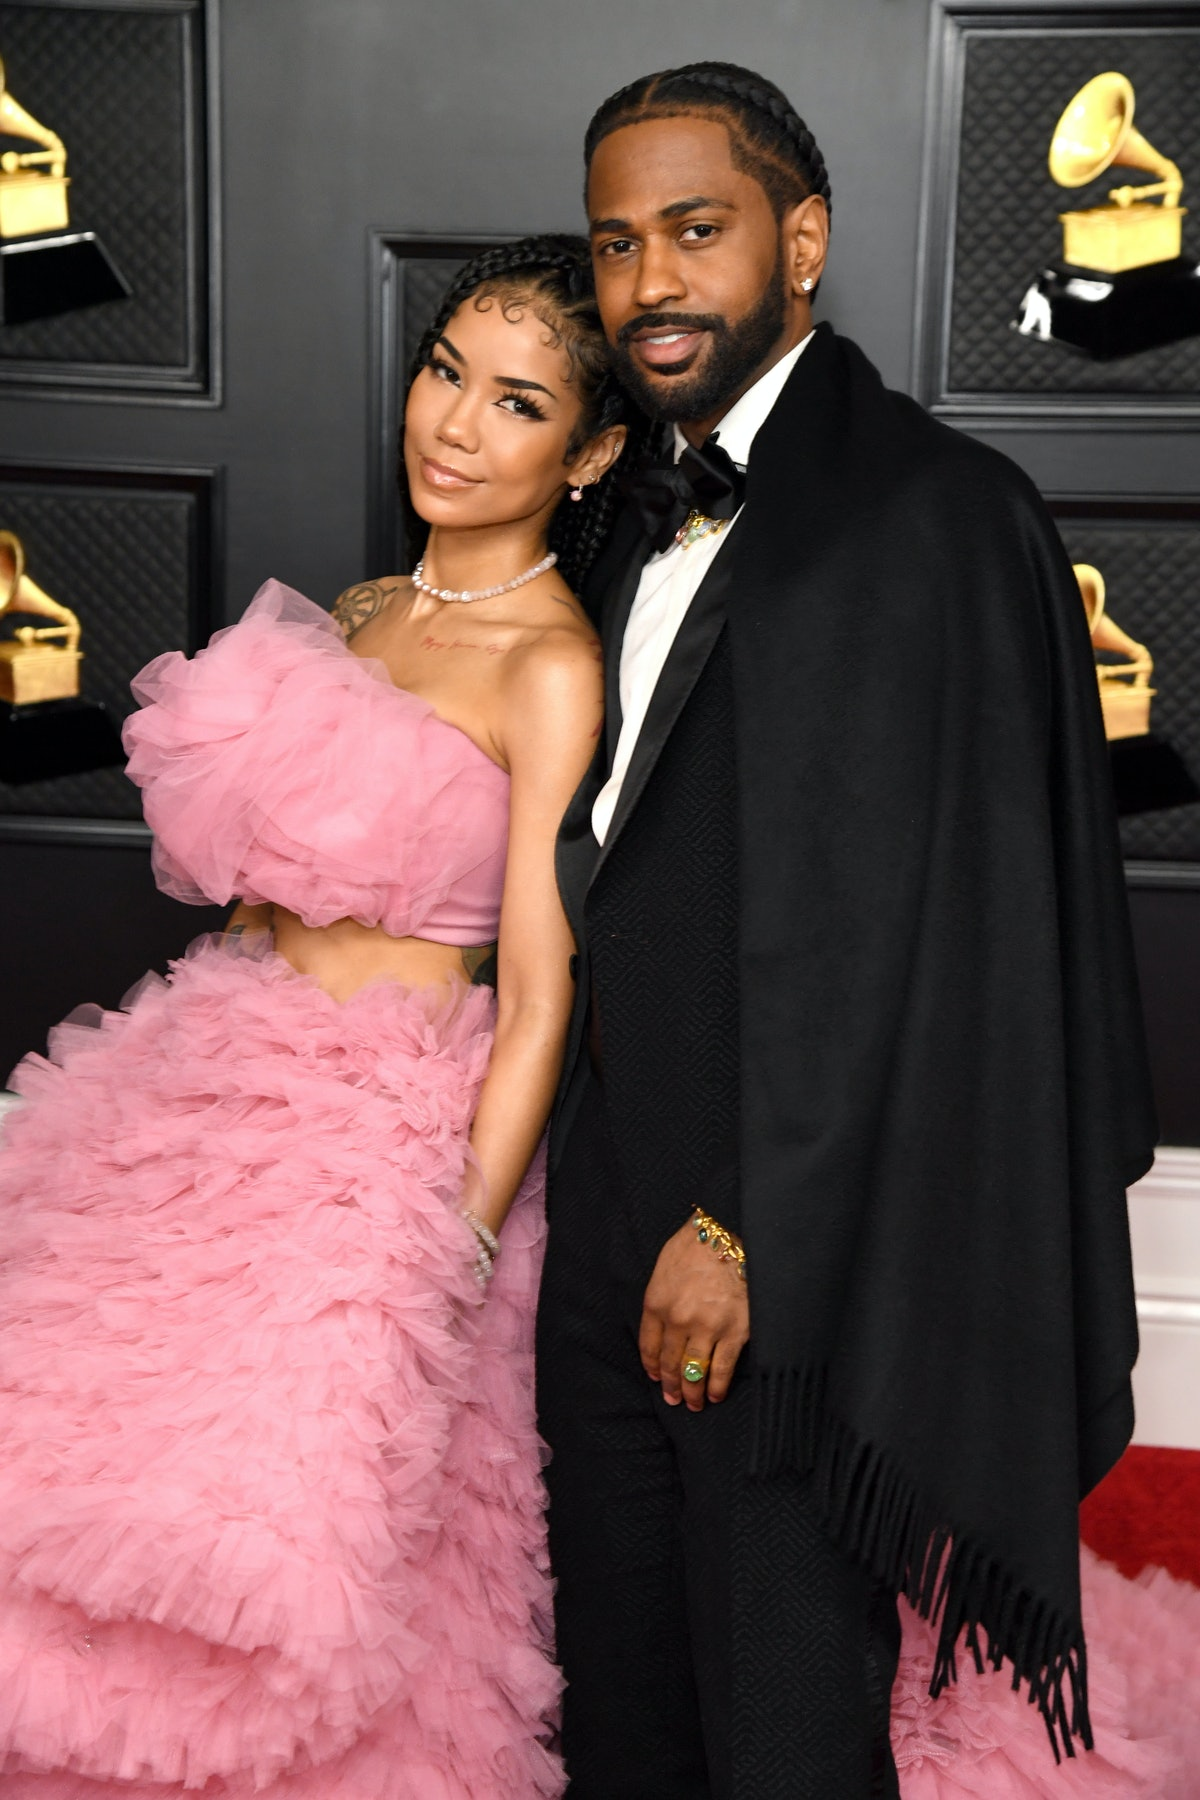 LOS ANGELES, CALIFORNIA - MARCH 14: (L-R) Jhené Aiko and Big Sean attend the 63rd Annual GRAMMY Awards at Los Angeles Convention Center on March 14, 2021 in Los Angeles, California. (Photo by Kevin Mazur/Getty Images for The Recording Academy )